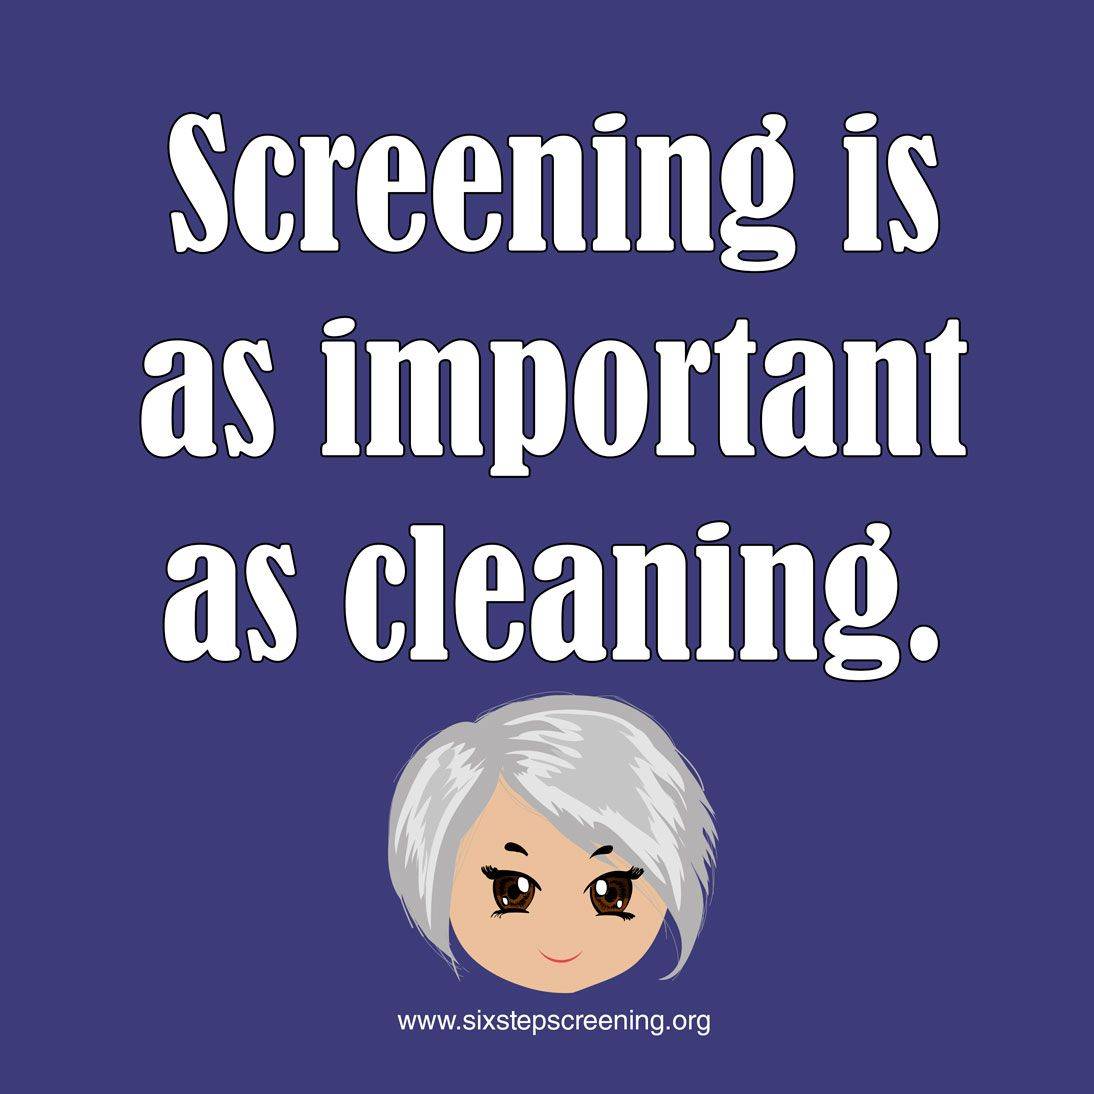 My friend called to tell me she is getting a cleaning